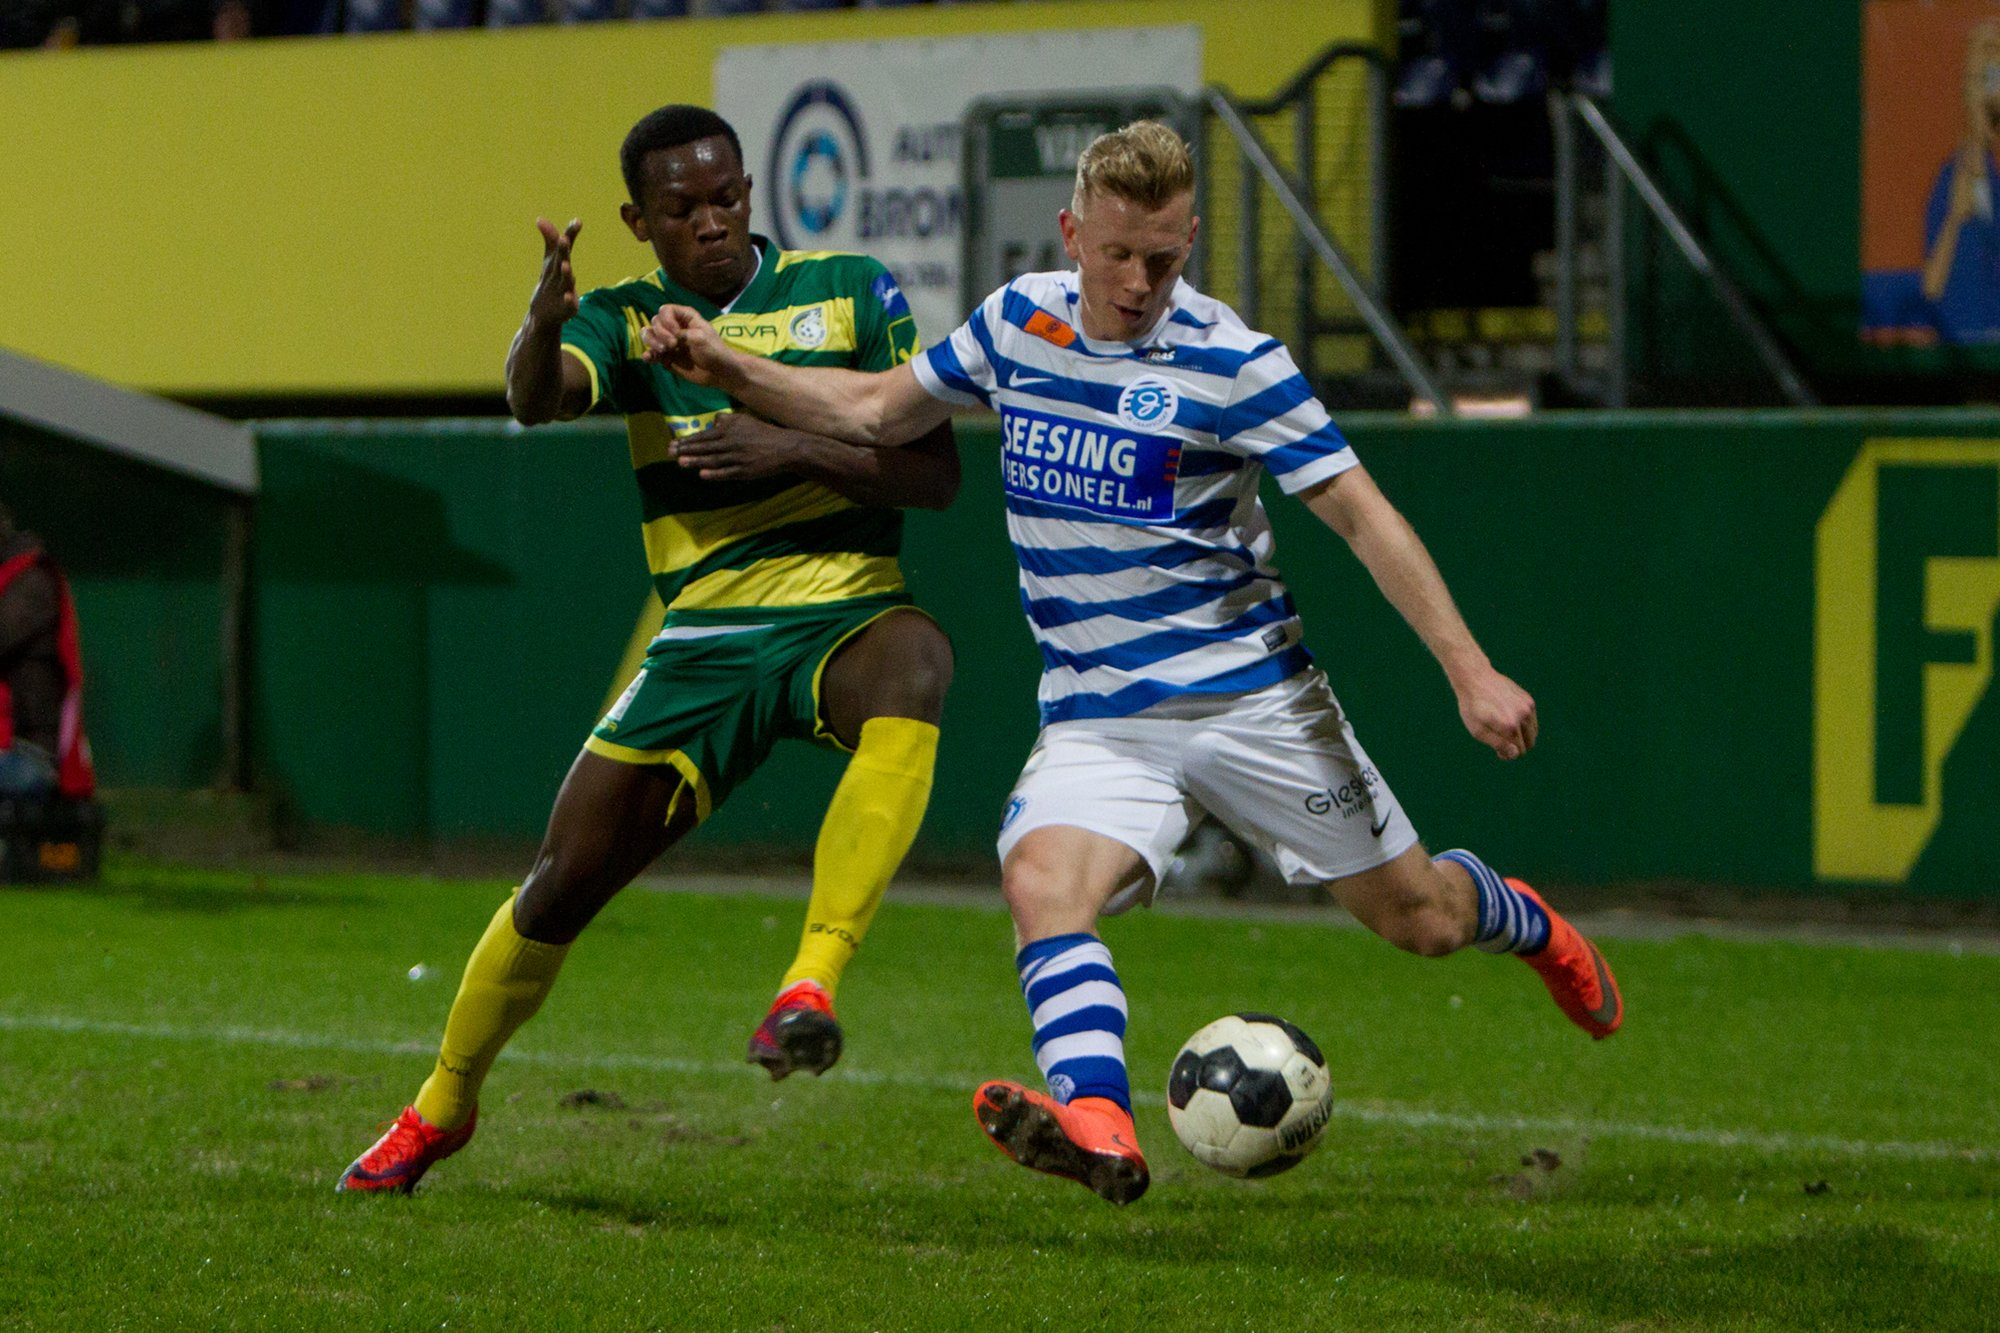 Oliseh's Fortuna Sittard Win At Home, Nwakali Features In Maastricht's Away Draw